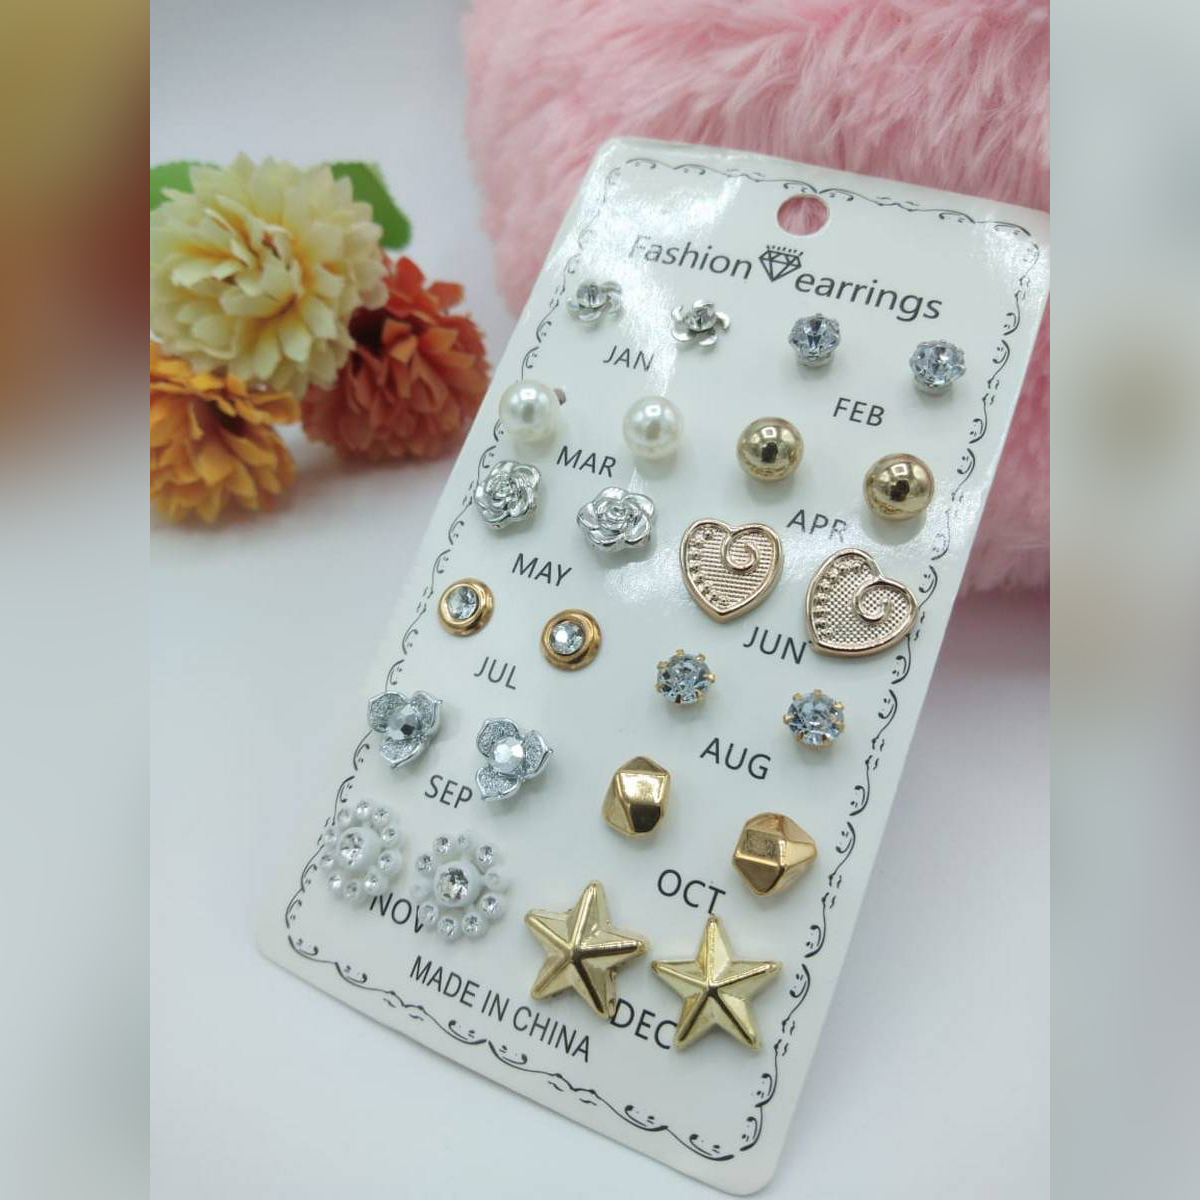 Earrings set of 12 pairs for girls fashion ear rings tops studs